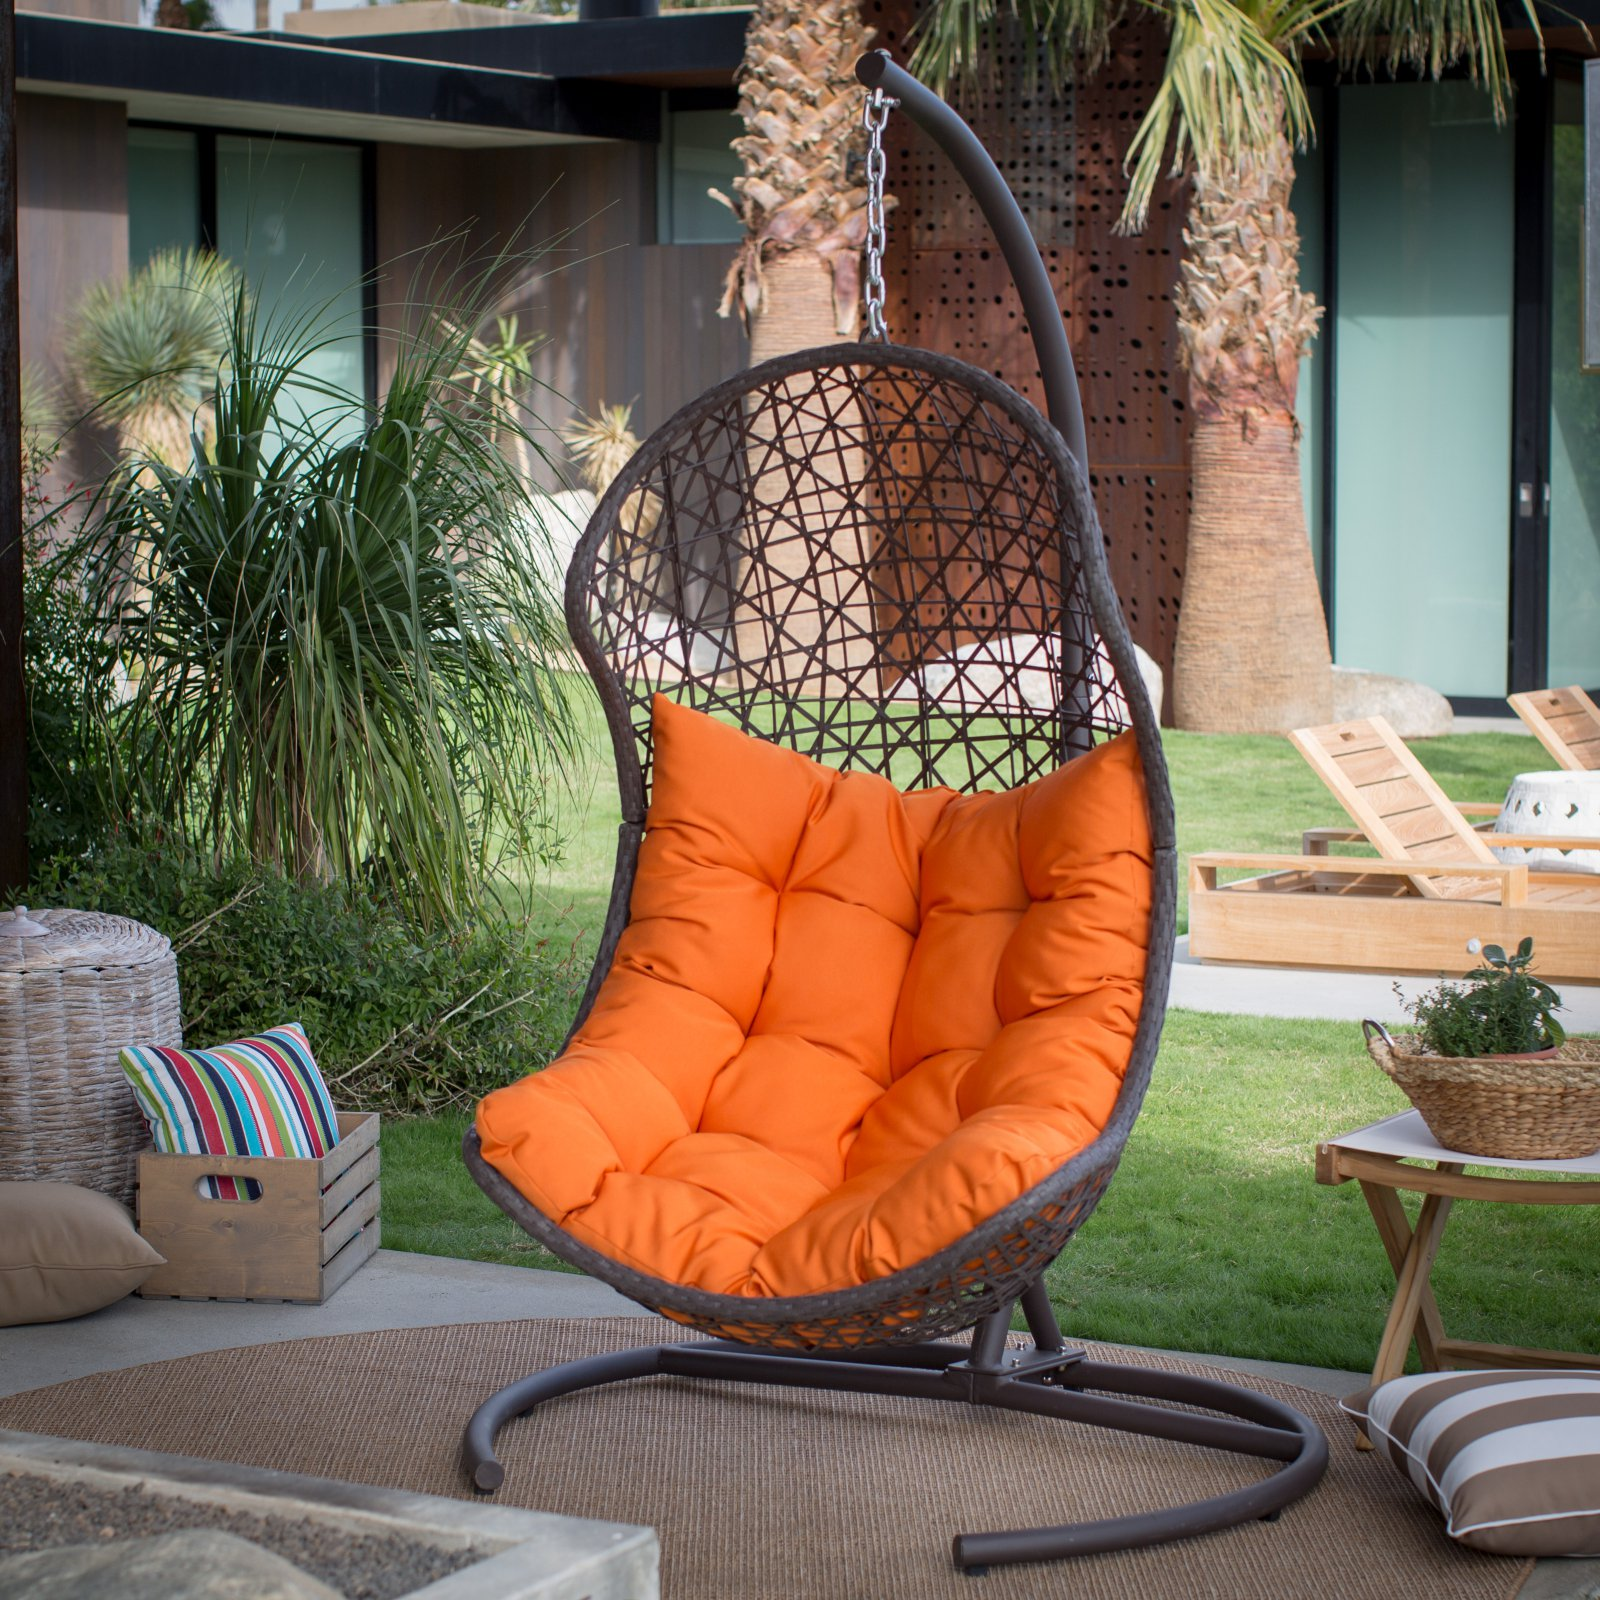 Island Bay Cocos Resin Wicker Hanging Egg Chair with Cushion and Stand